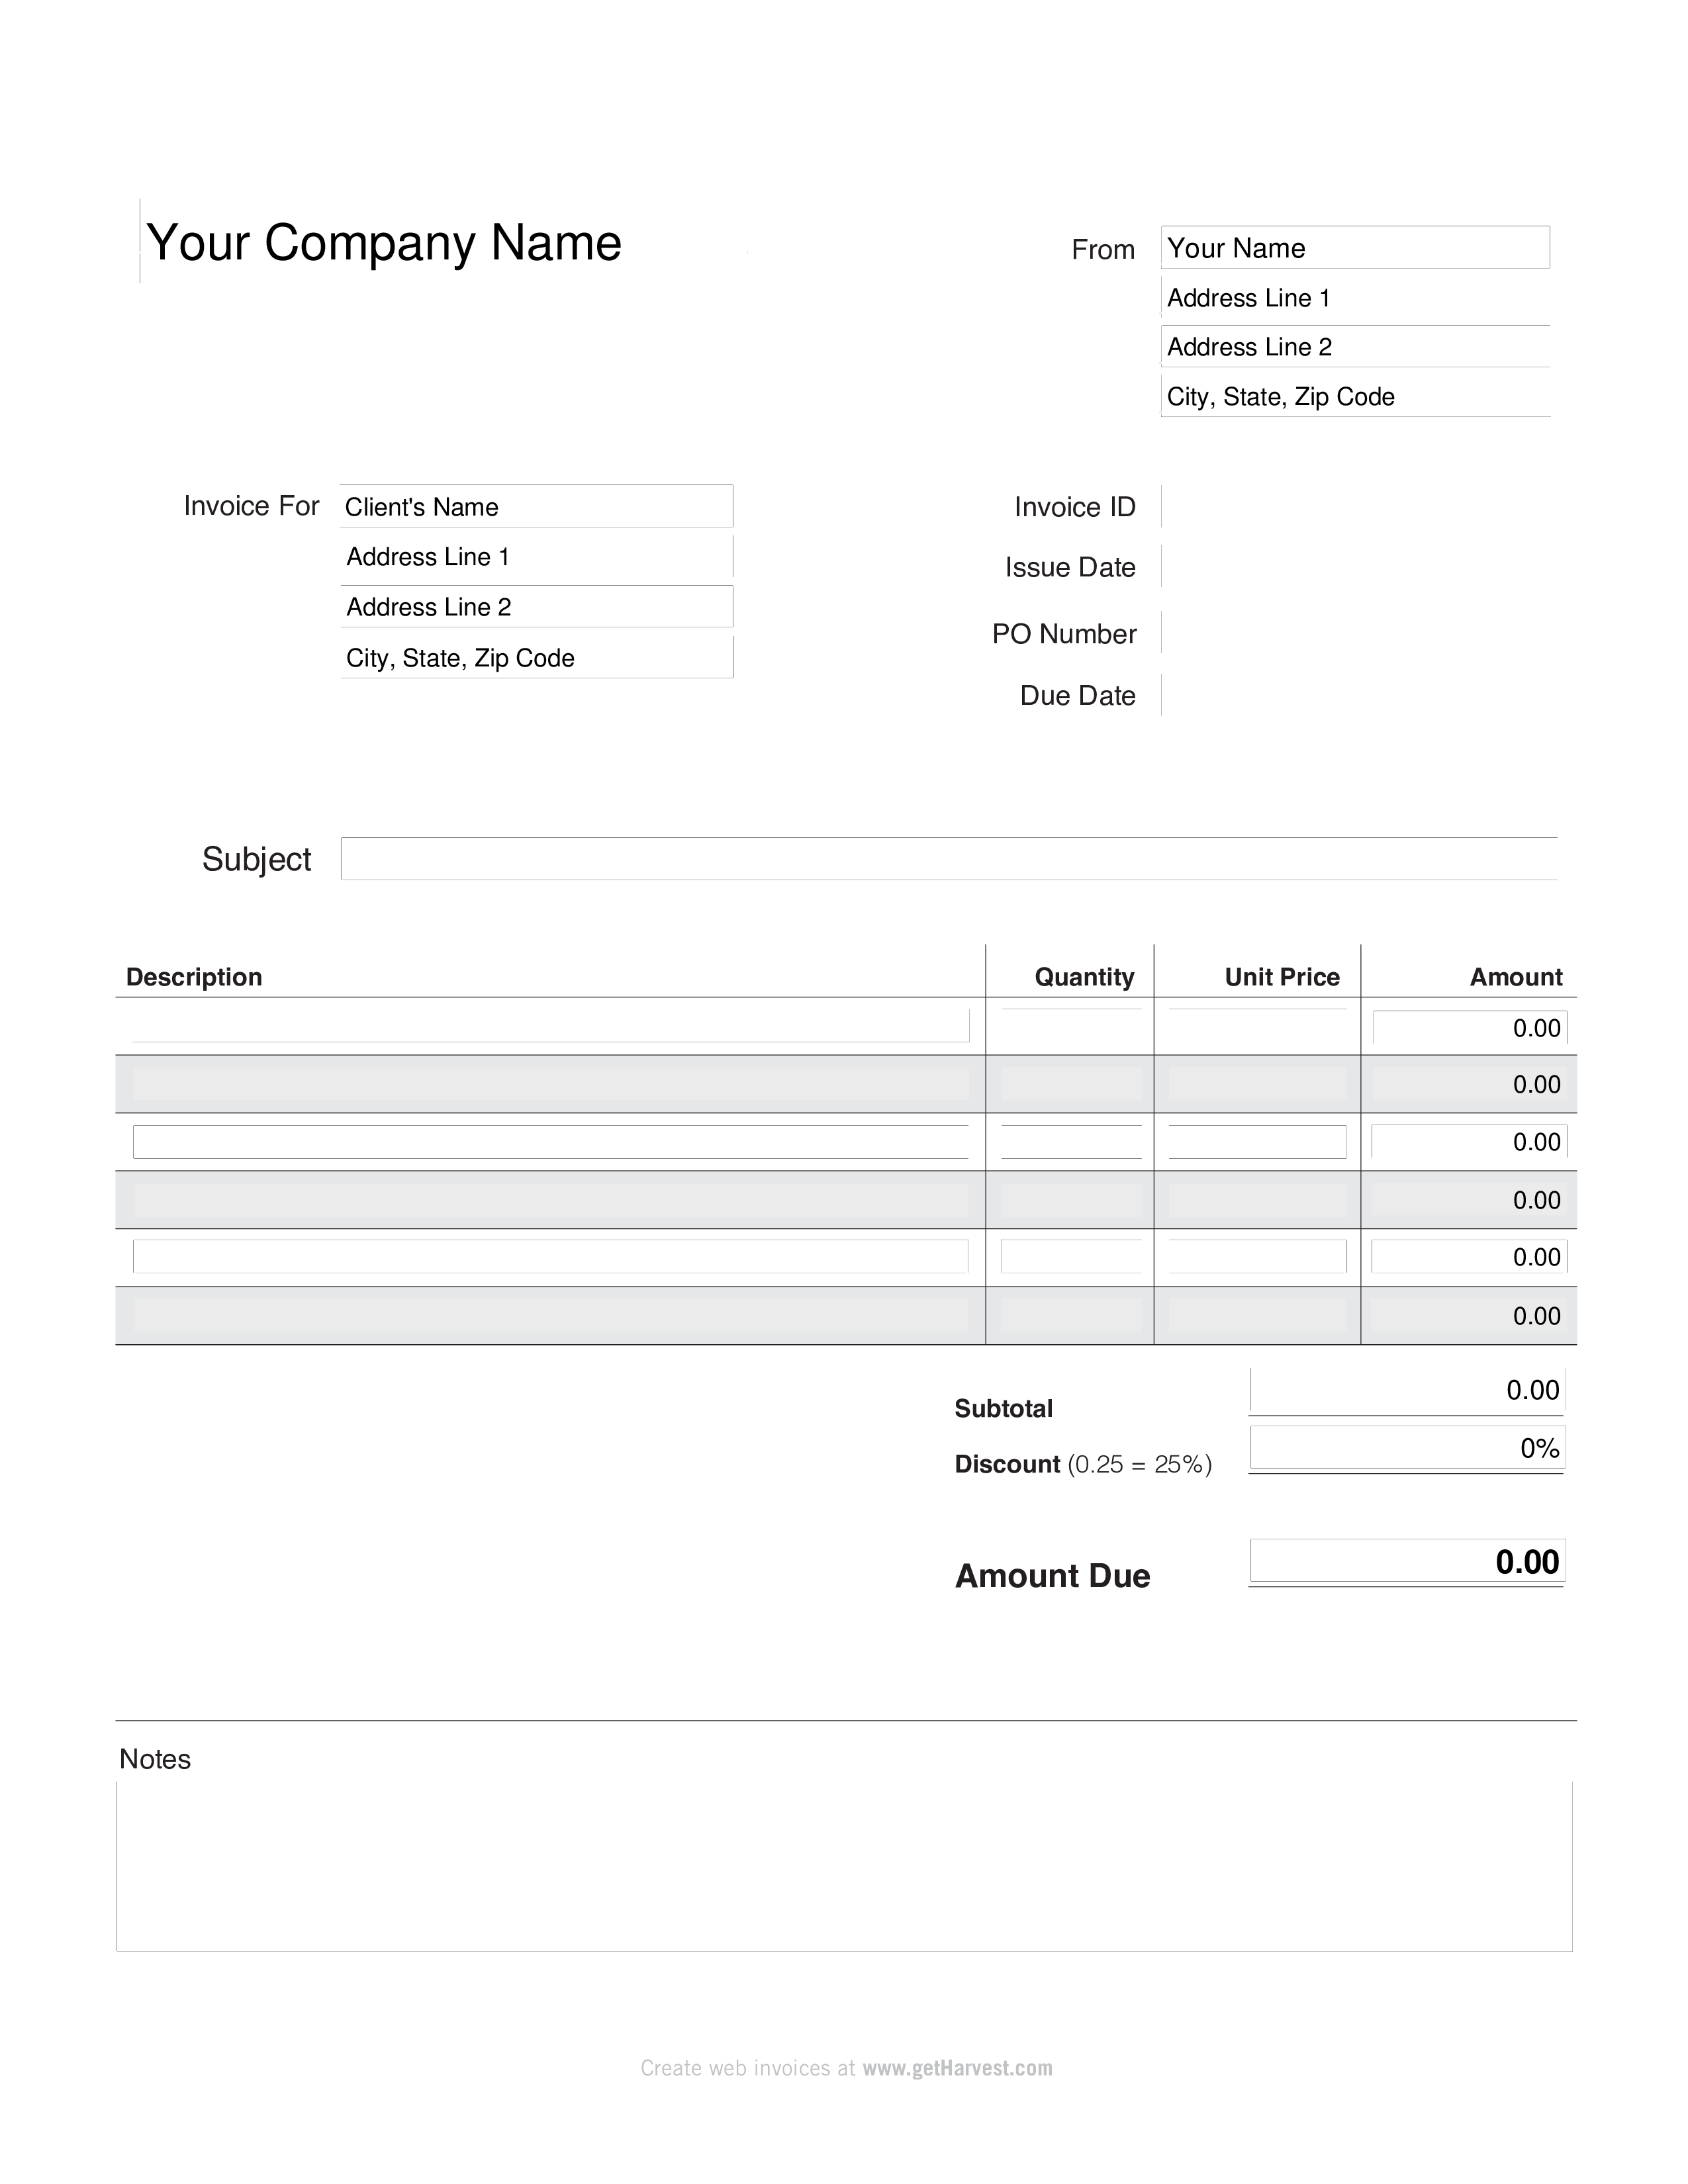 Home Bakery Invoice How to create a Home Bakery Invoice